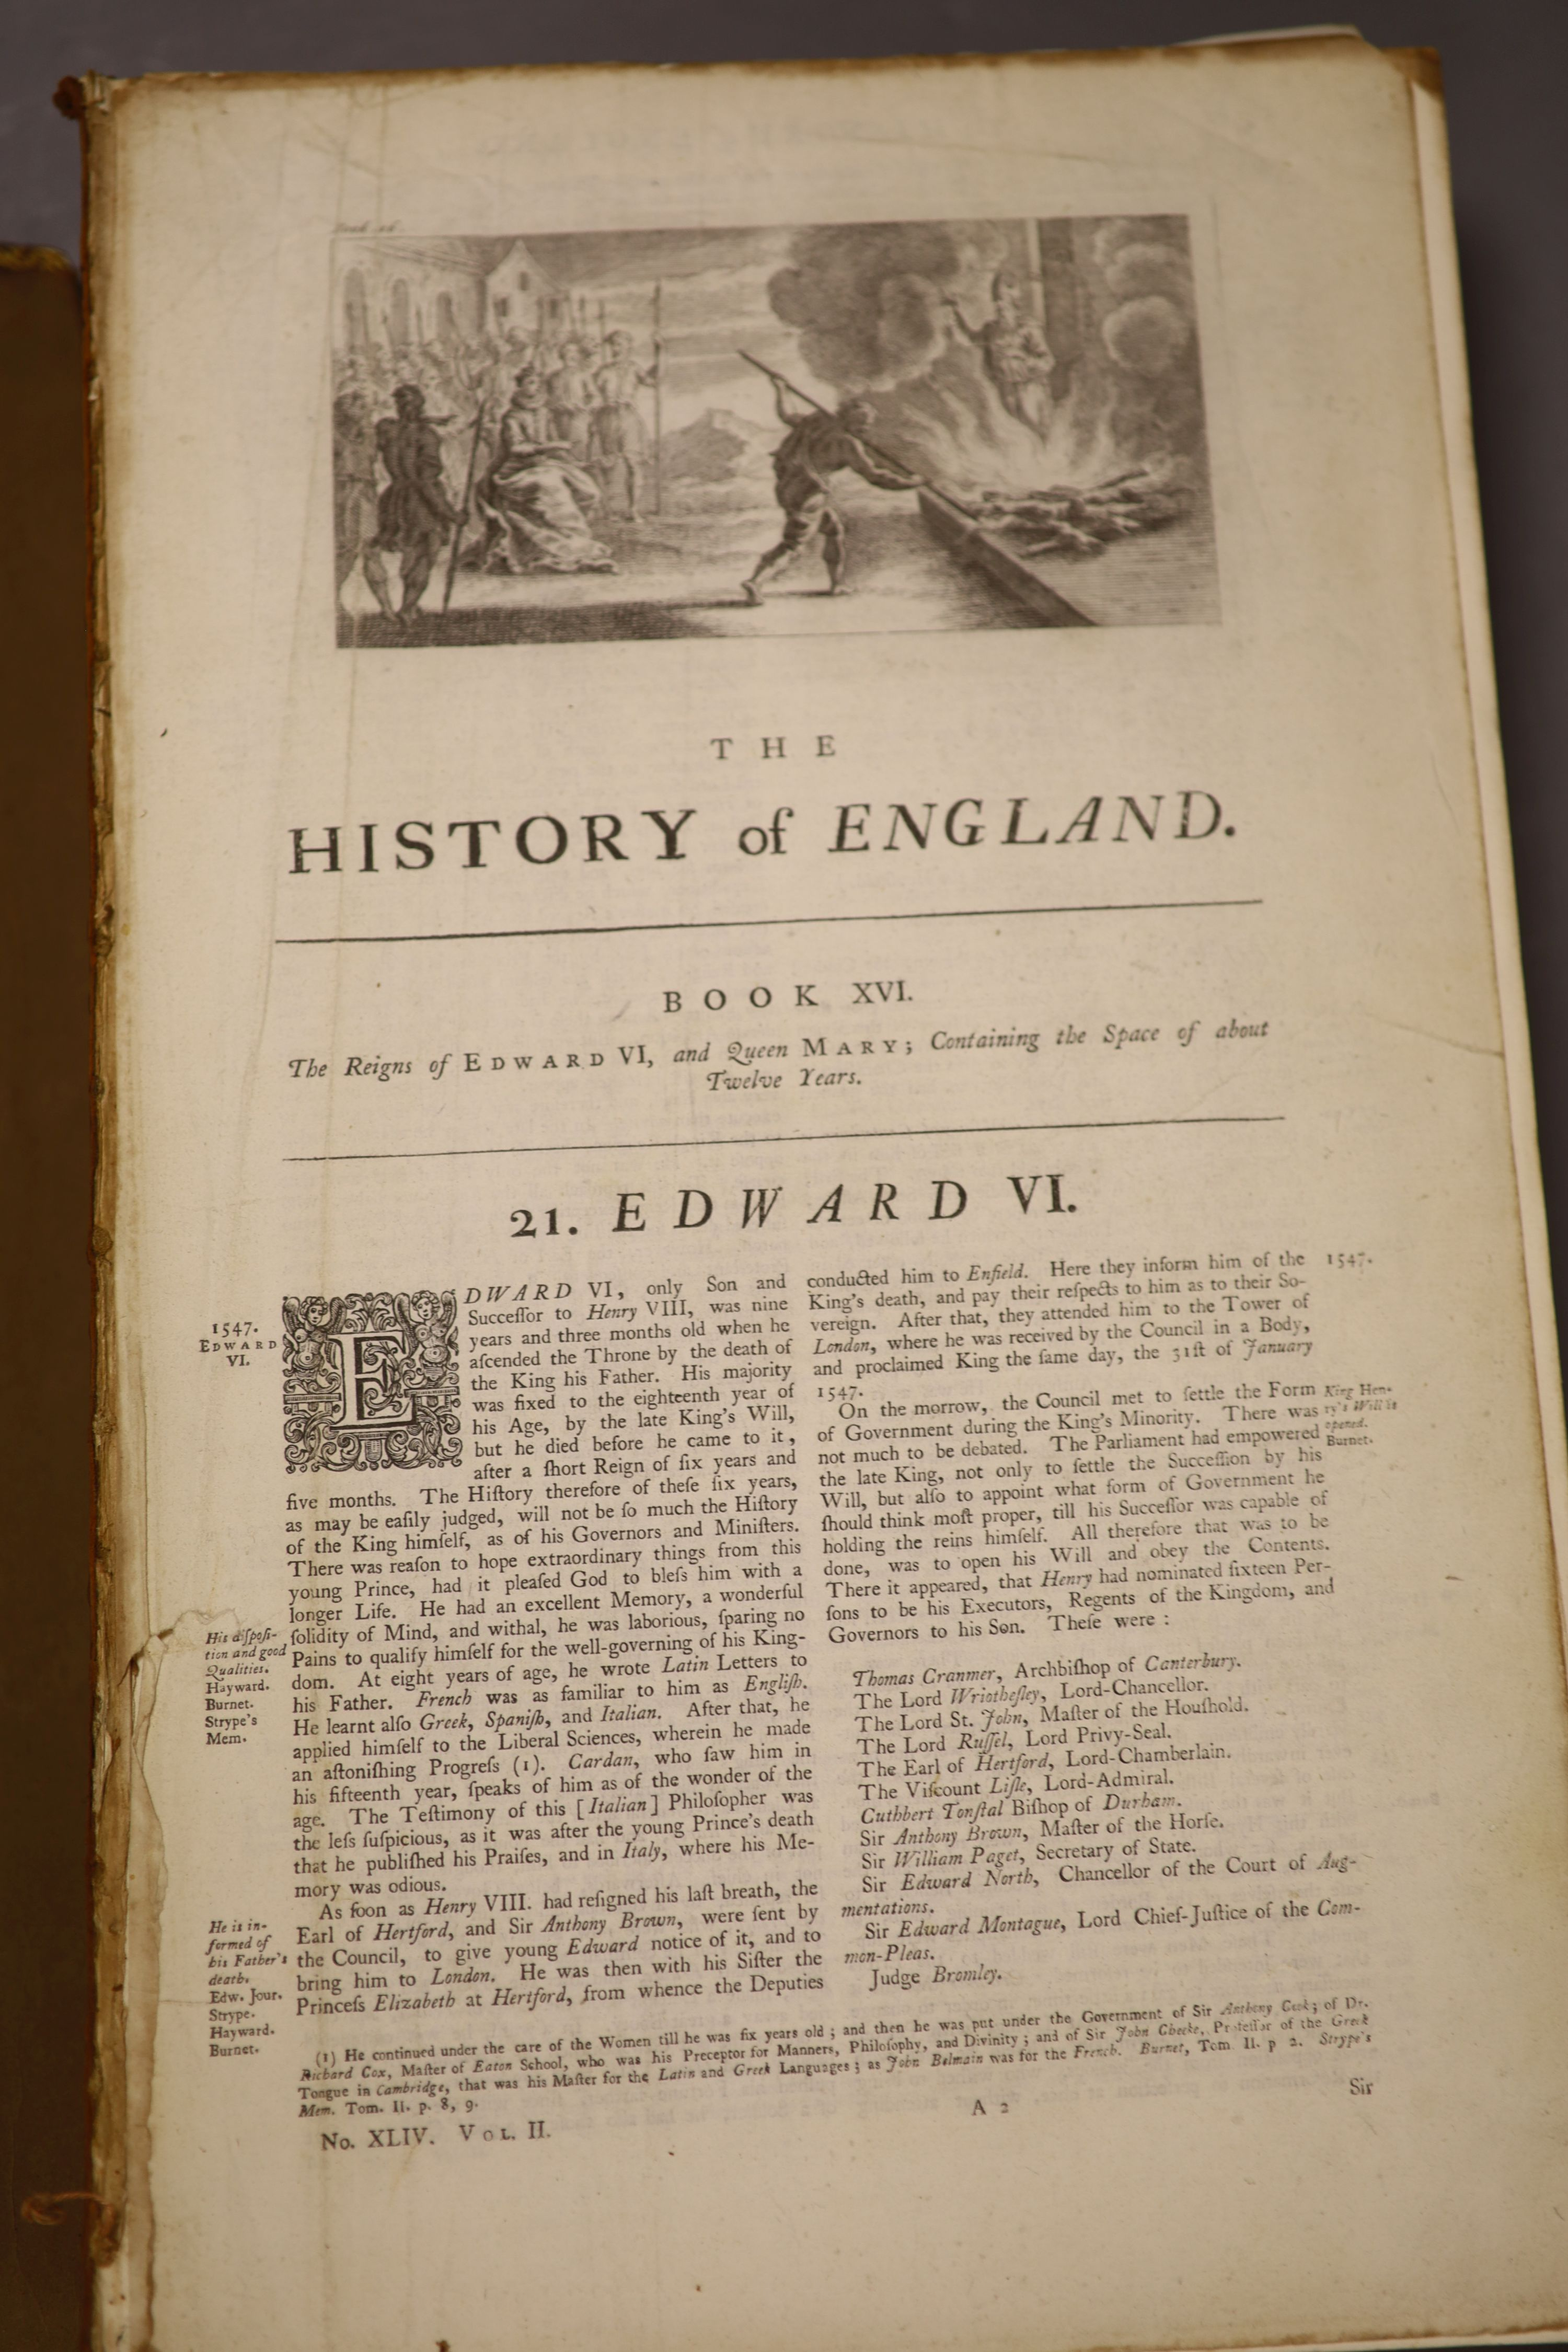 History of England, Tindal 4 vols, quarto, plates removed, boards detached - Image 5 of 5